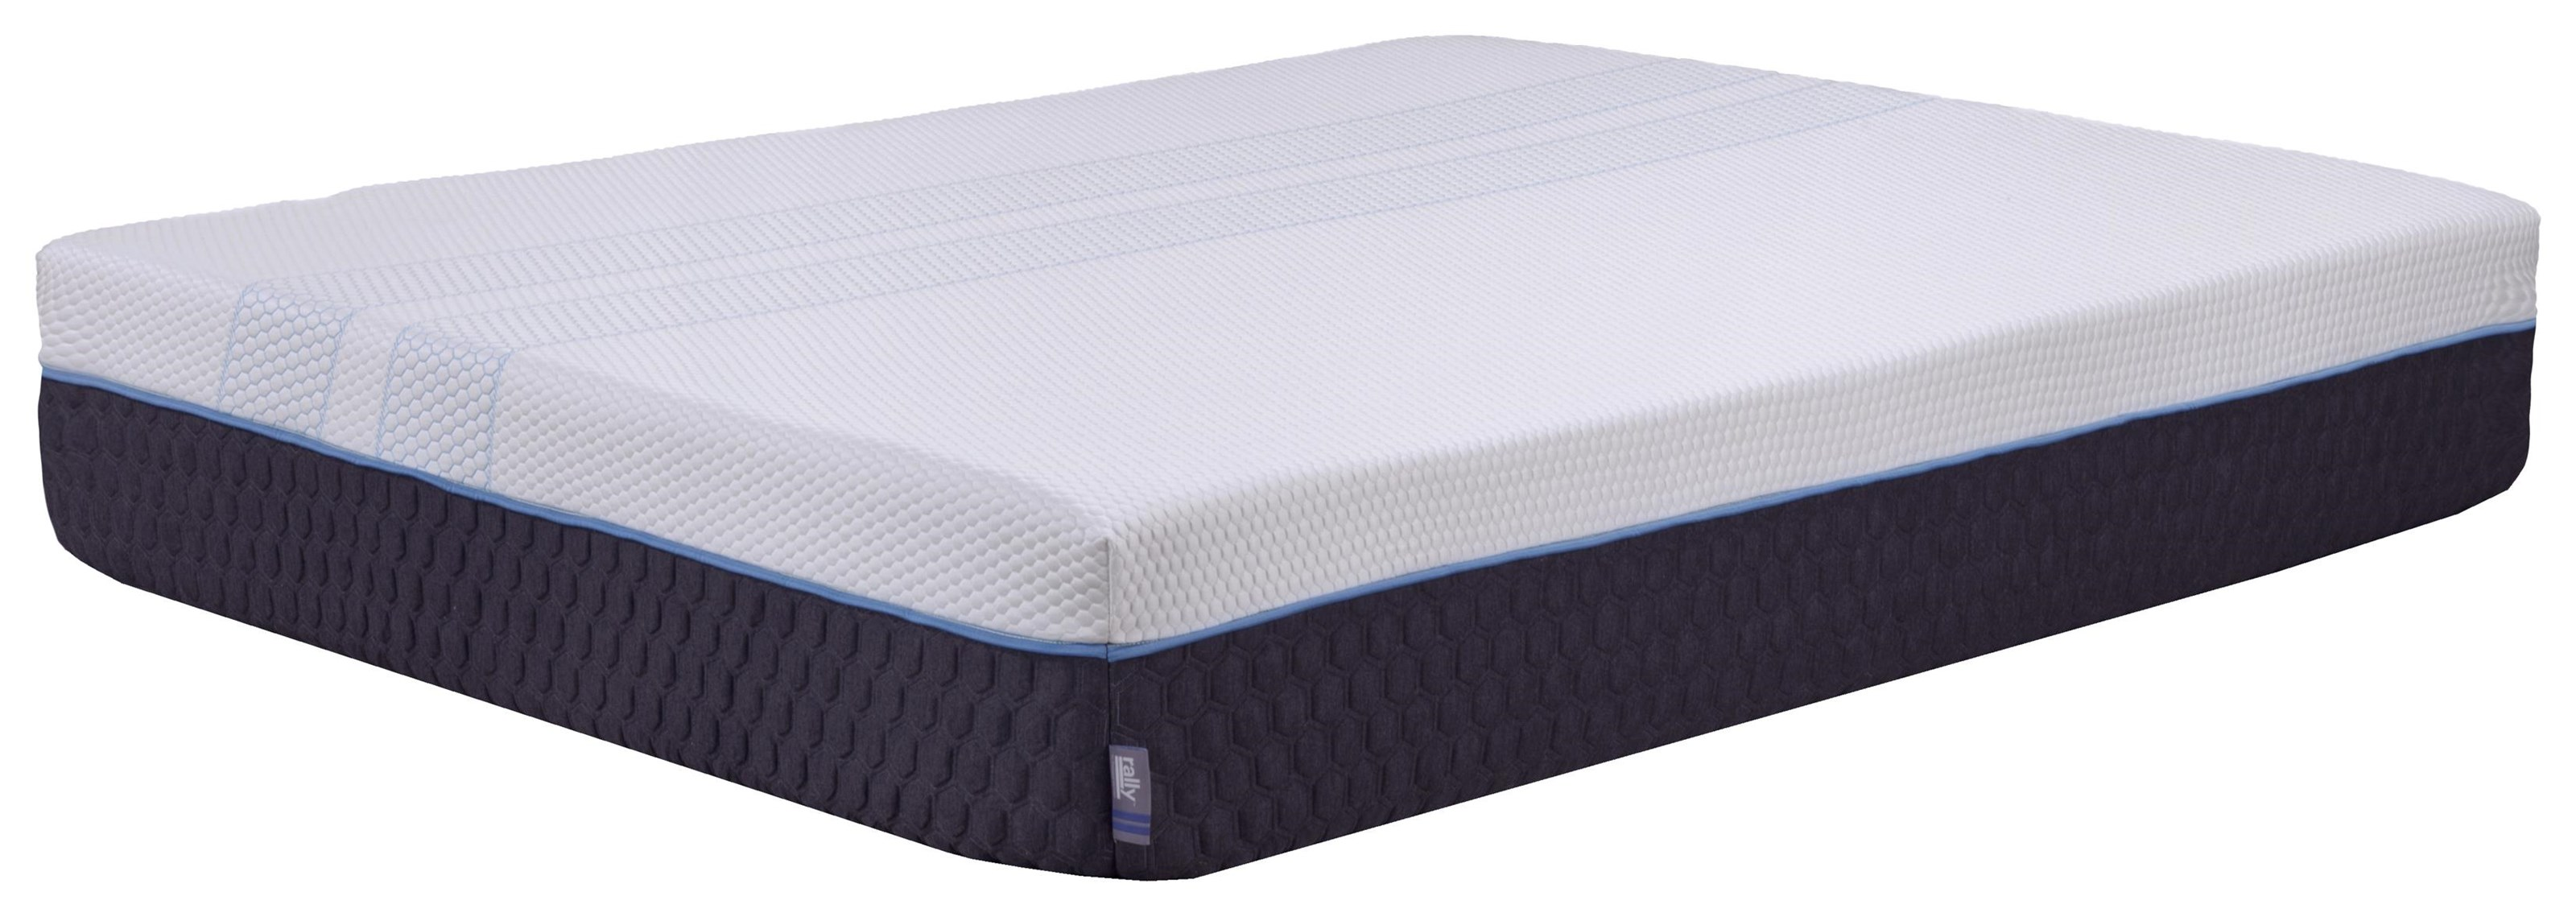 Rally Hybrid Cooling Firm Full Firm Hybrid Cooling Mattress in a Box by Diamond Mattress at Beck's Furniture